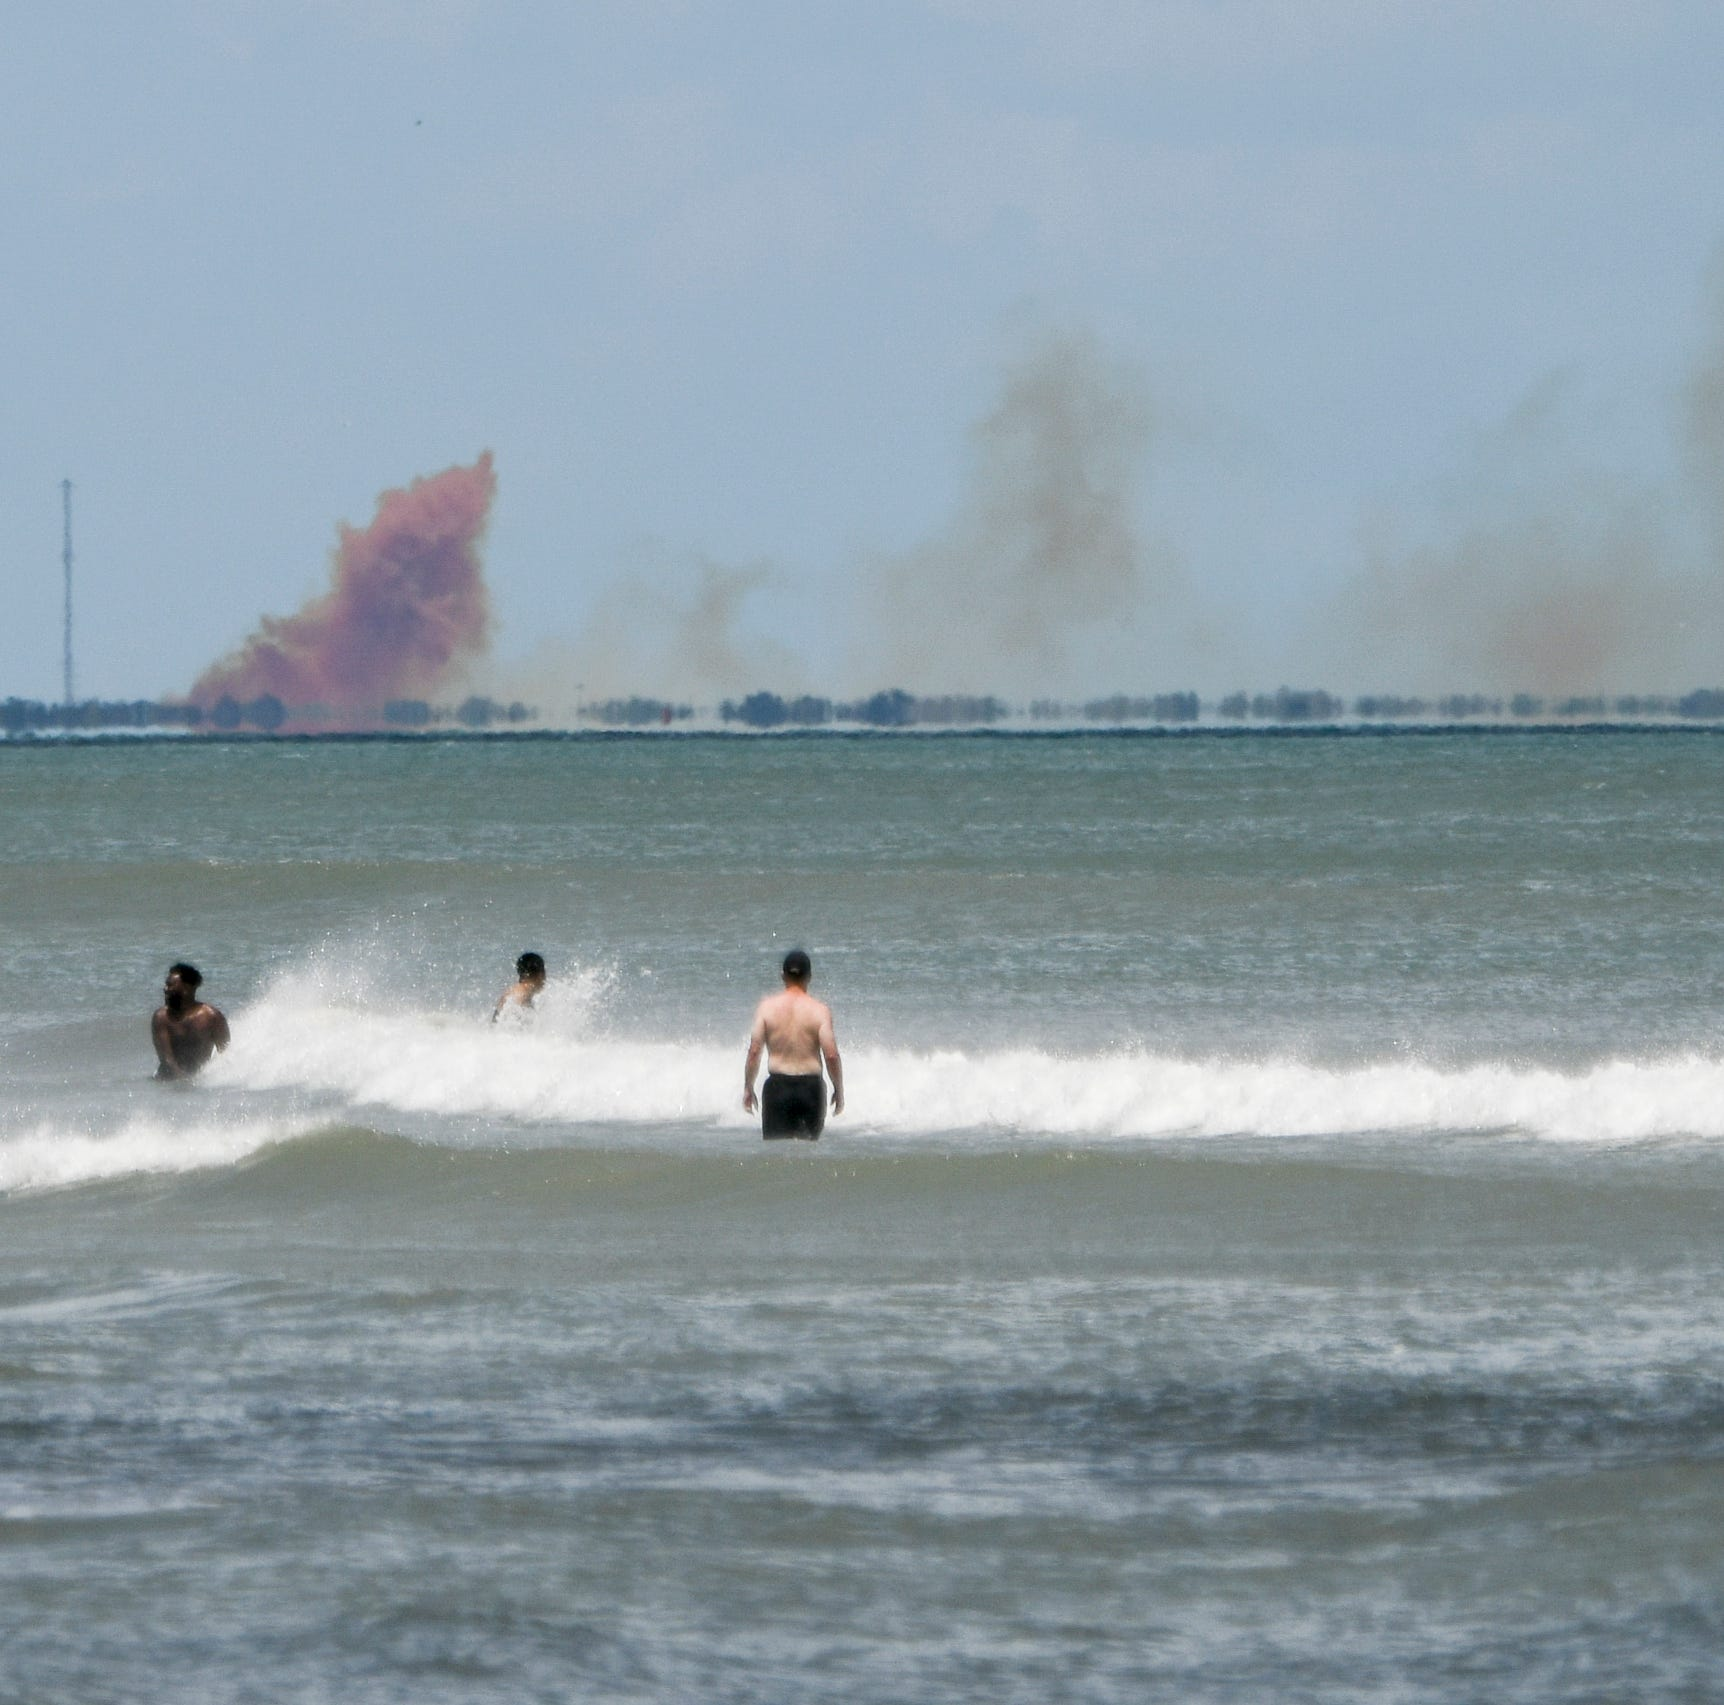 Smoke seen for miles as SpaceX Crew Dragon suffers 'anomaly' at Cape Canaveral during engine test fire